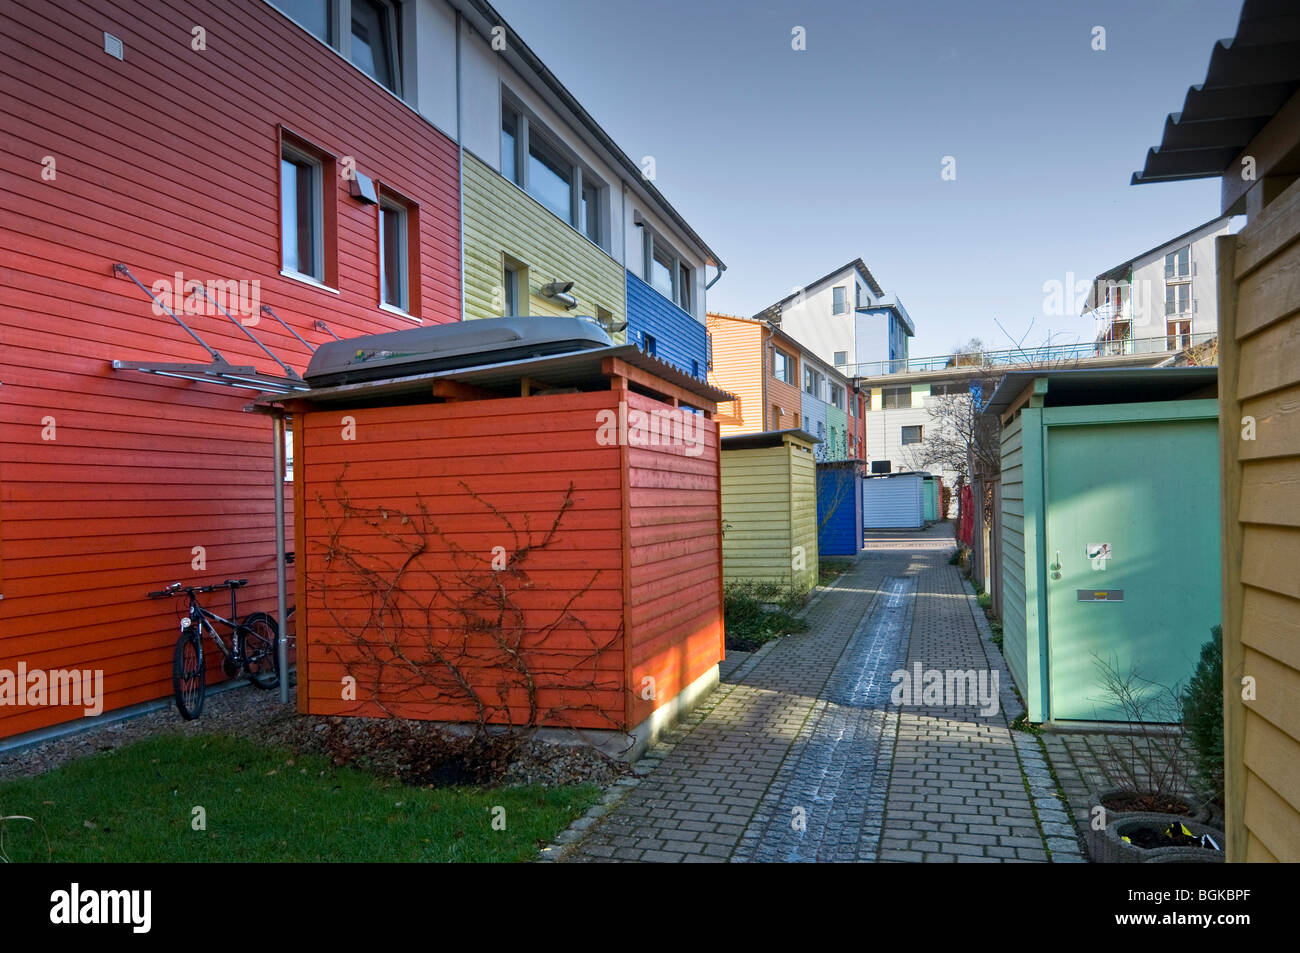 Ecological Vauban district in Freiburg, Baden-Wuerttemberg, Germany, Europe - Stock Image